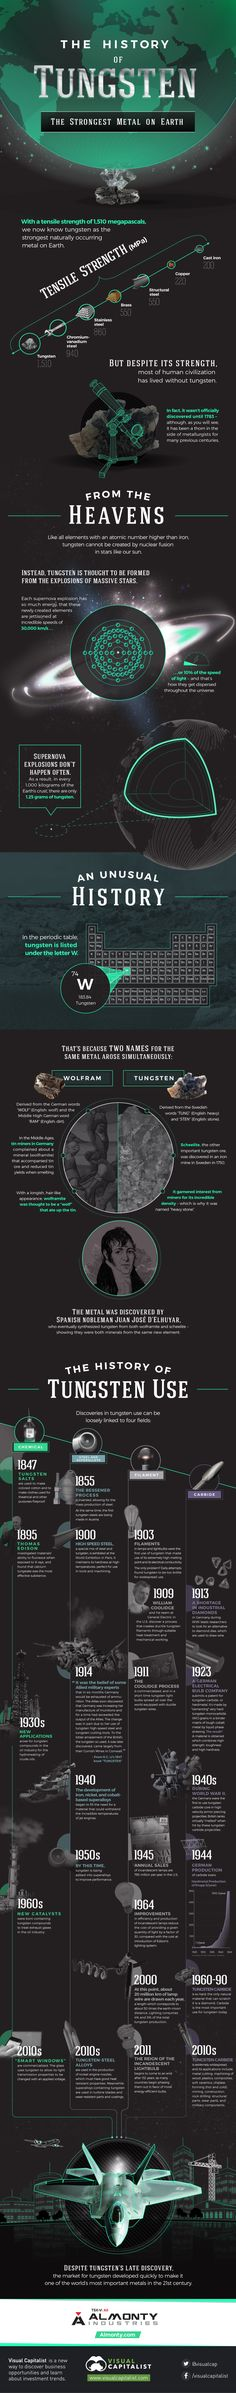 Infographic: The History of Tungsten, the Strongest Natural Metal on Earth